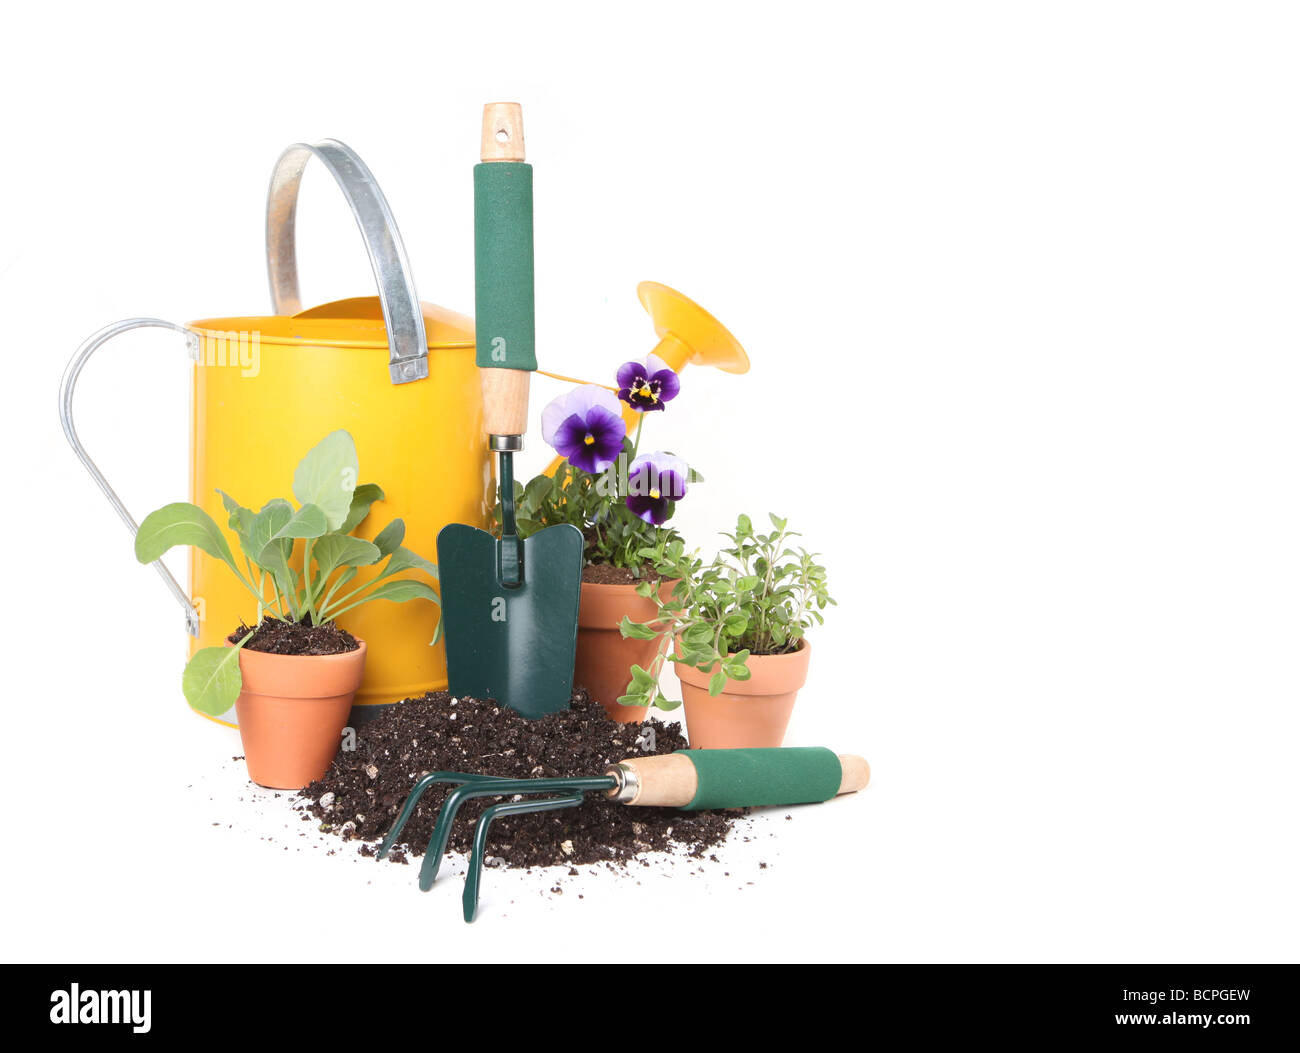 Planting New Flowers and Herbs in Celebration of Spring Time Stock Photo